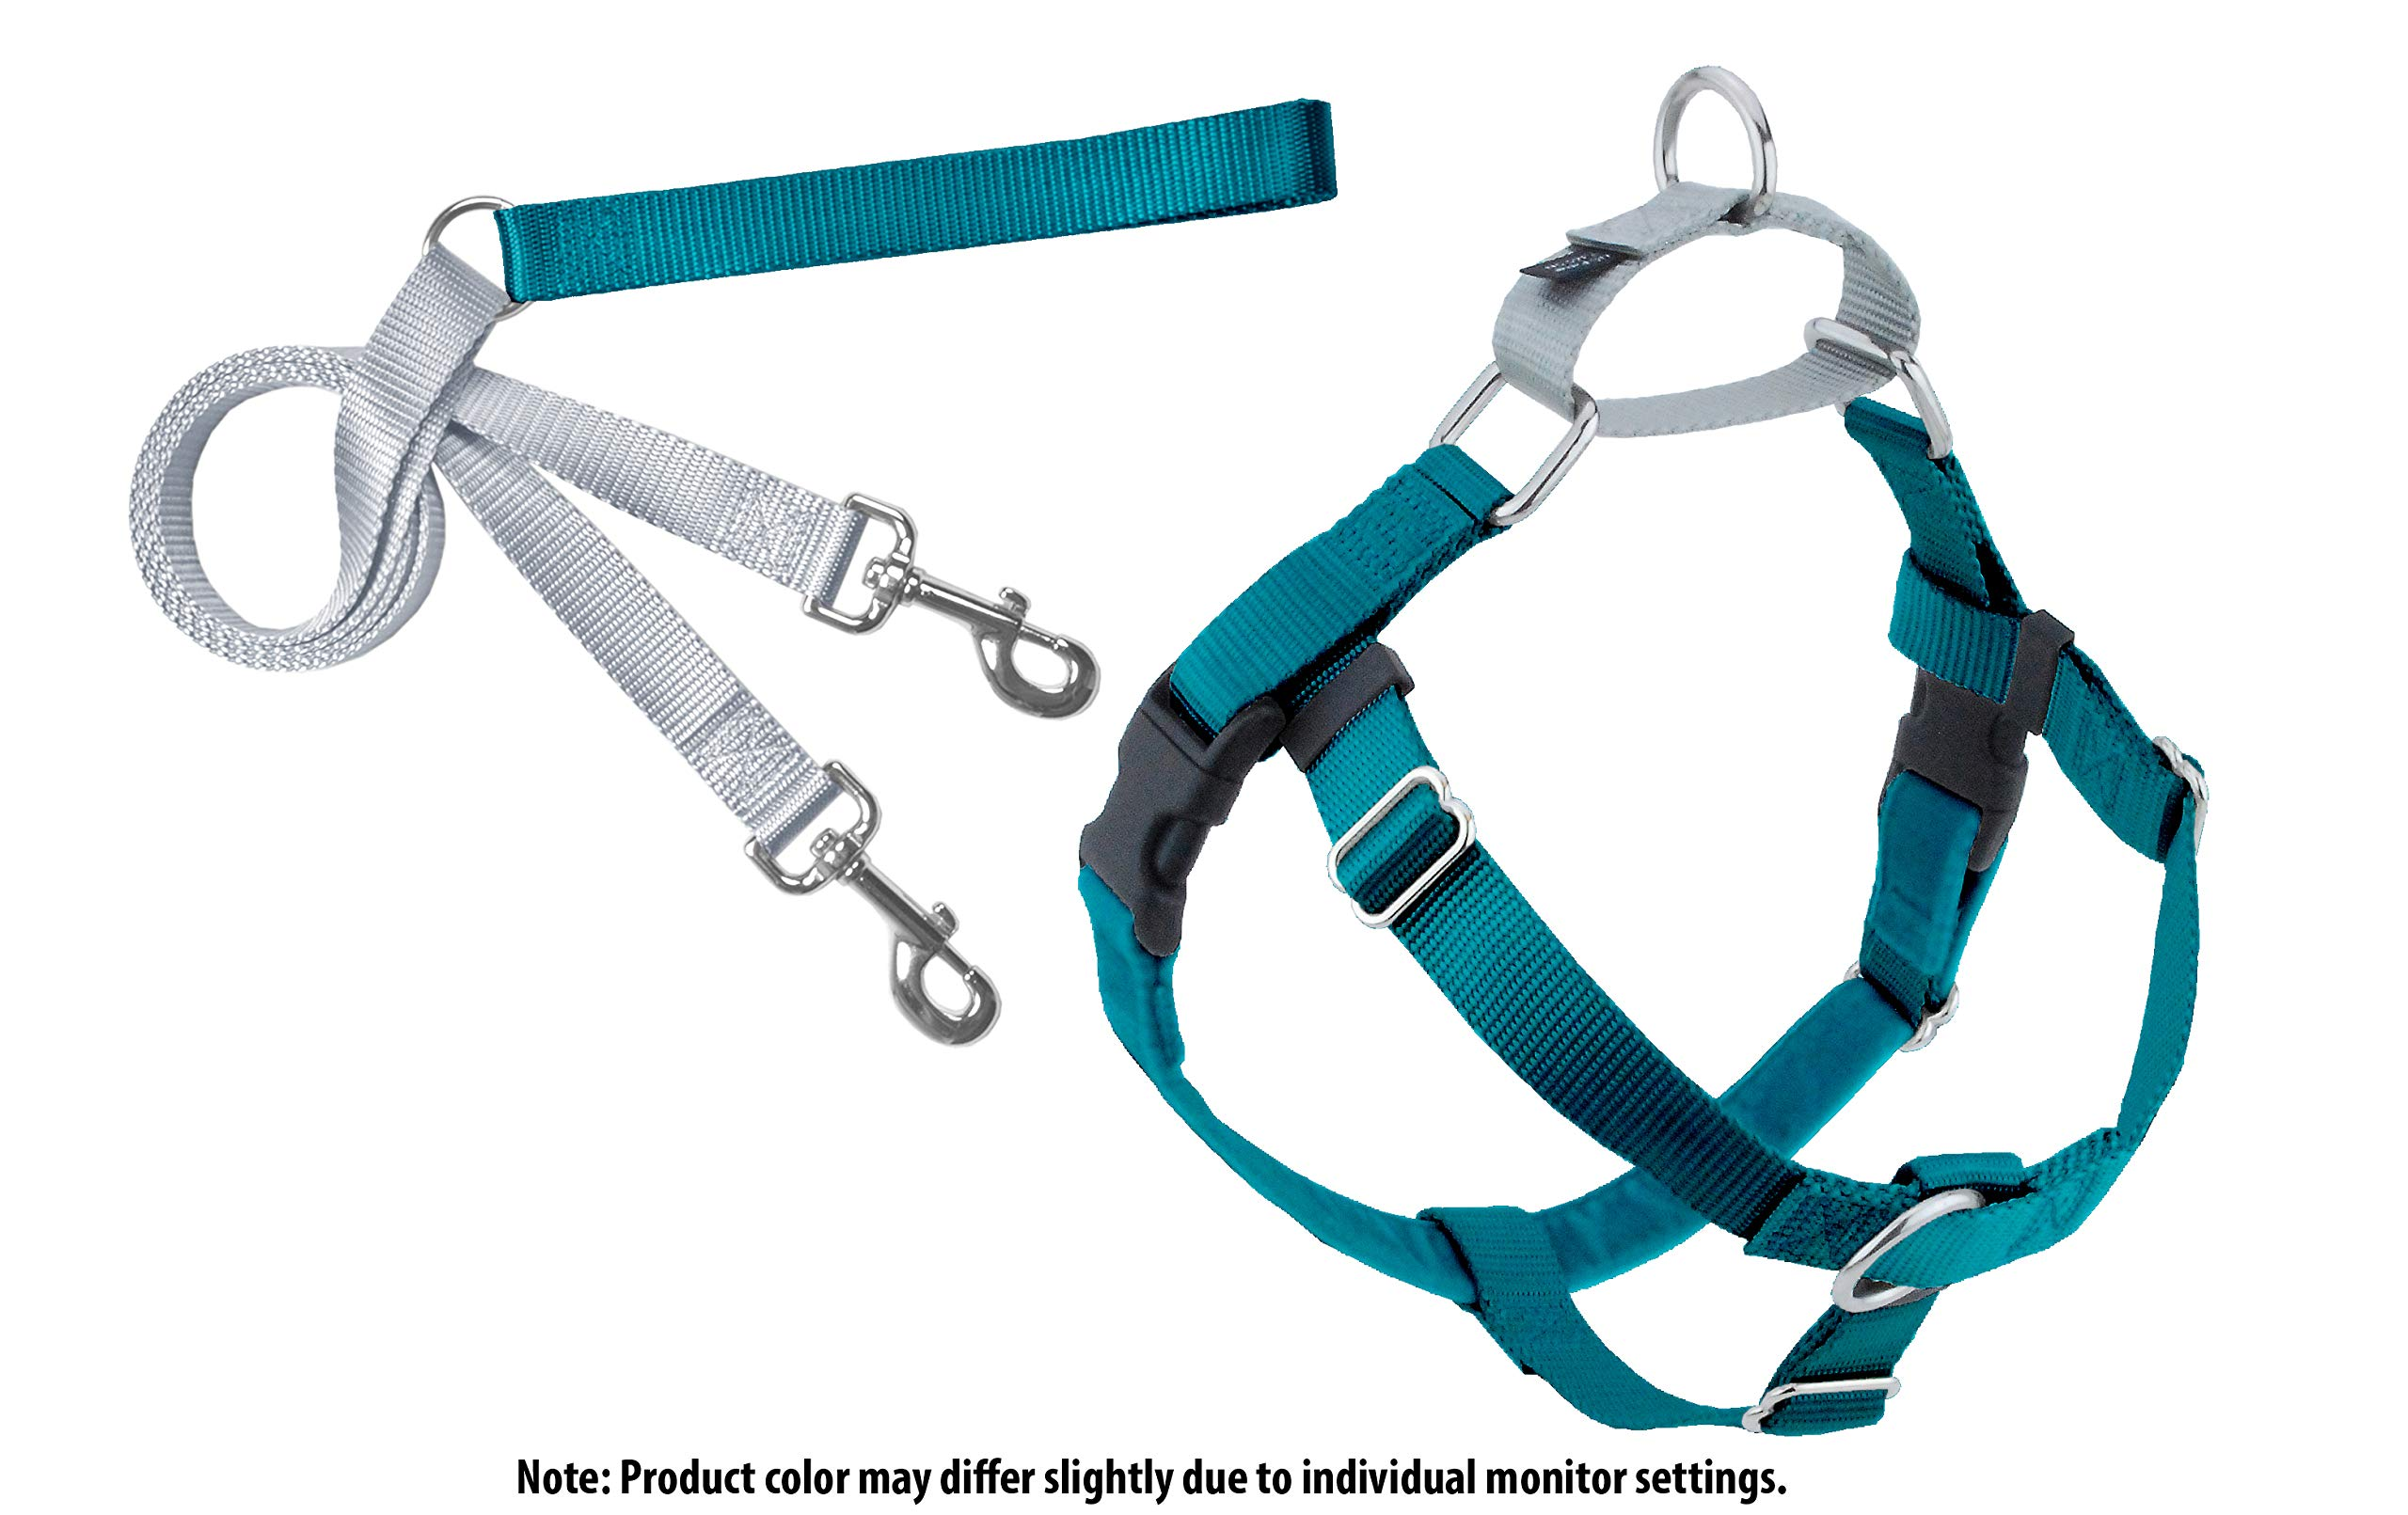 2 Hounds Design Freedom No-Pull Dog Harness and Leash, Adjustable Comfortable Control for Dog Walking, Made in USA (Medium 5/8'') (Teal)